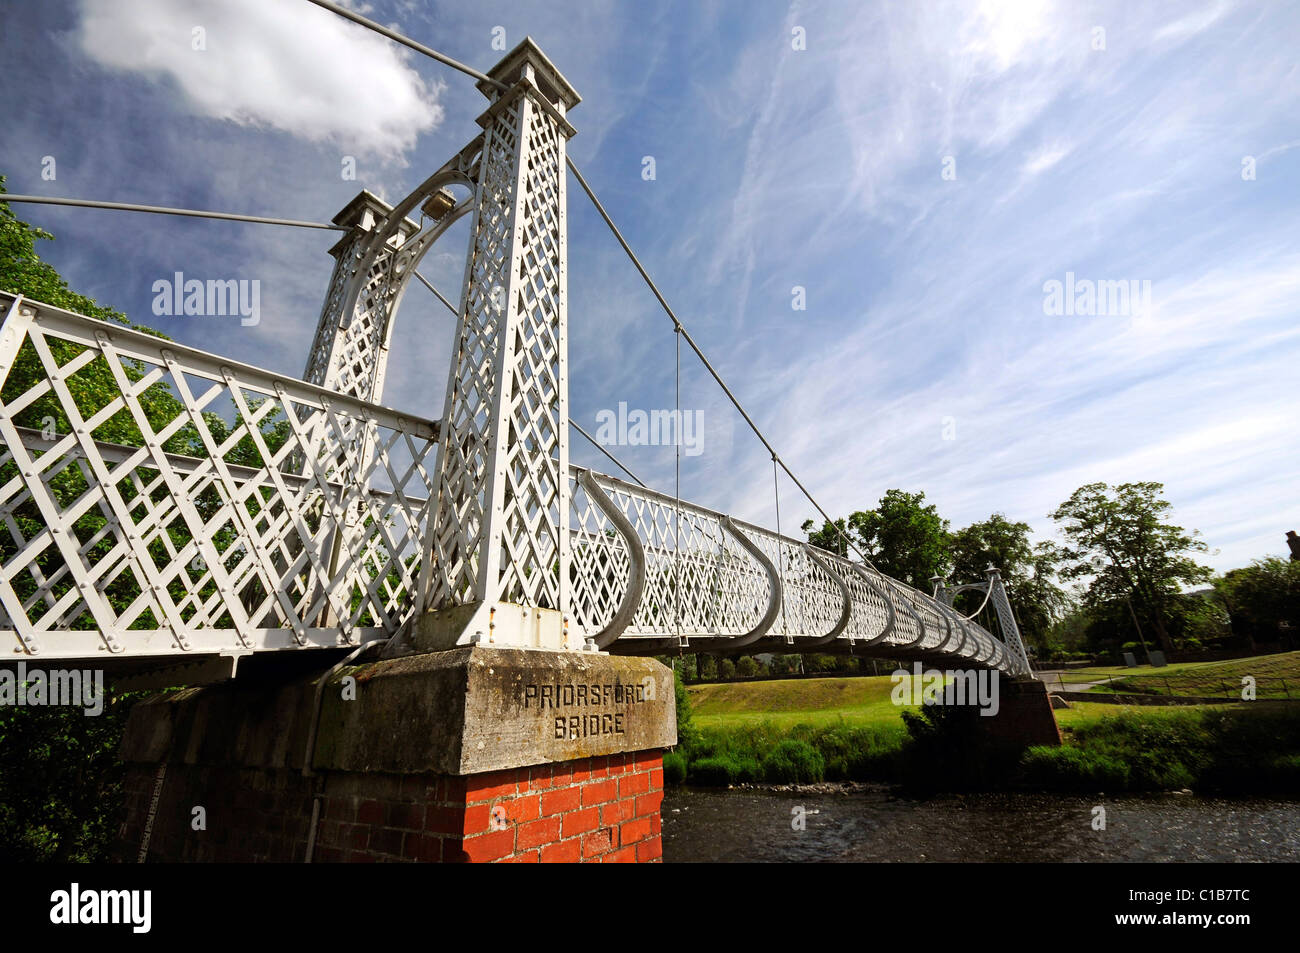 Priorsford Bridge Peebles, Scottish Borders - Stock Image